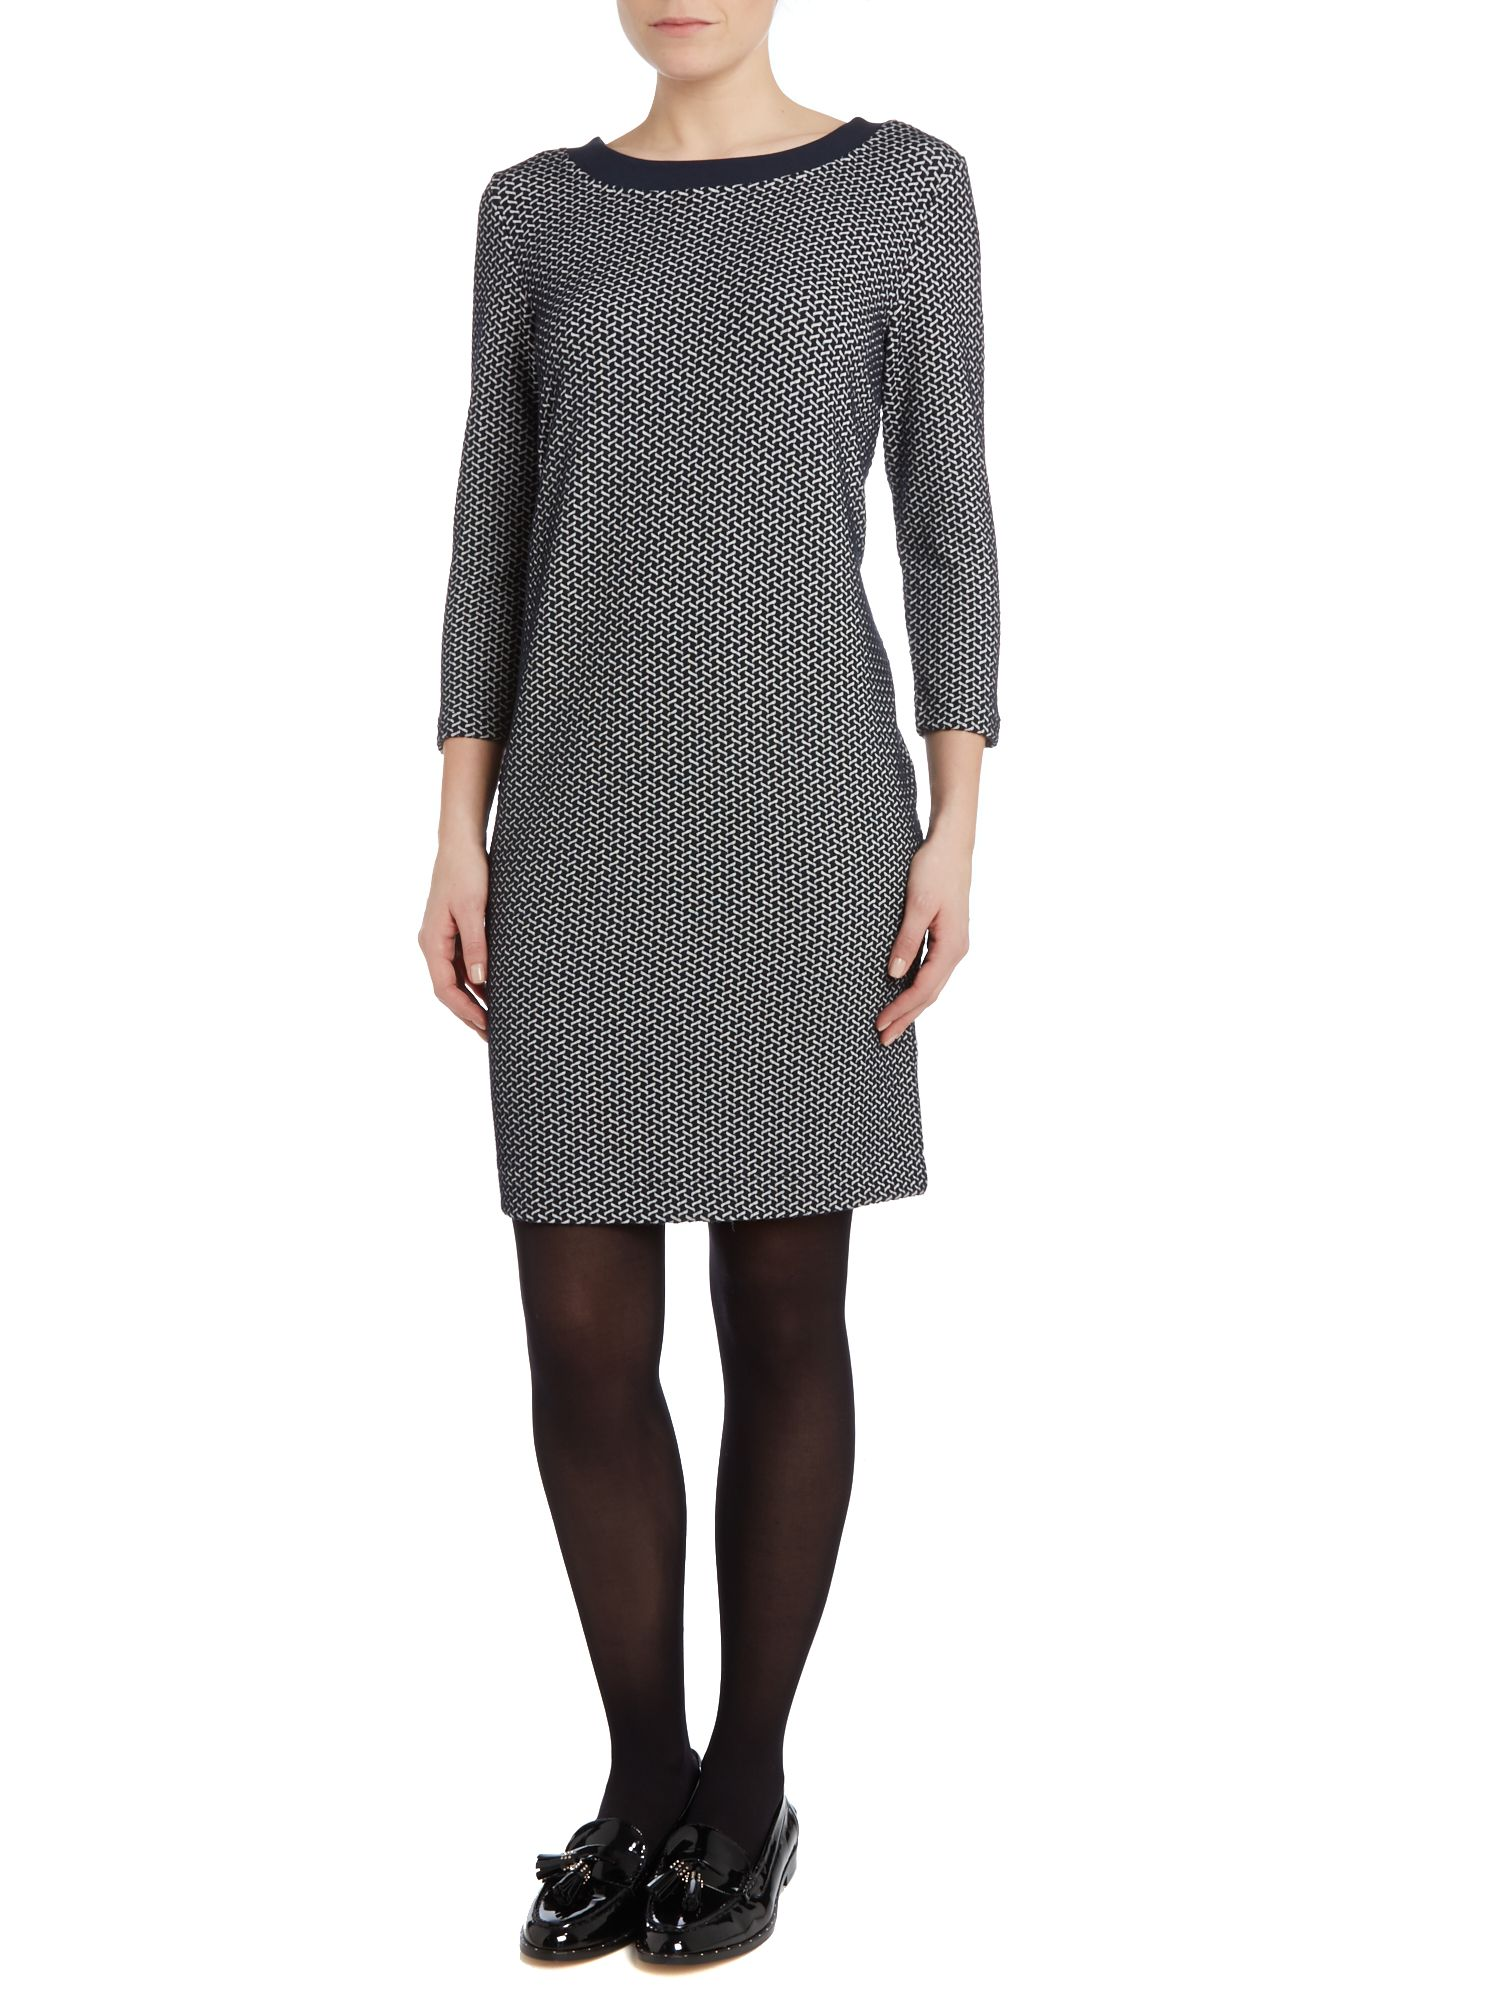 Shift dress with jacquard print